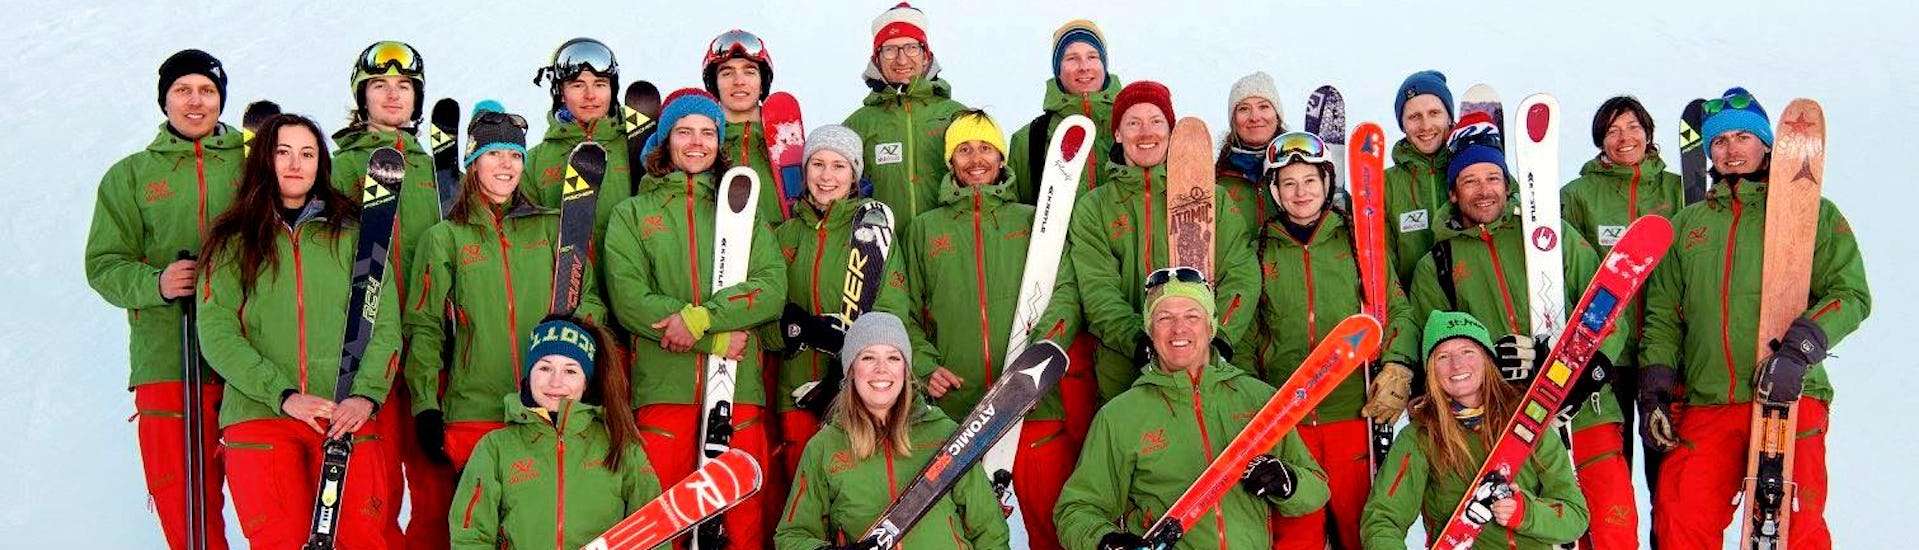 Group of ski instructors of Skischule A-Z